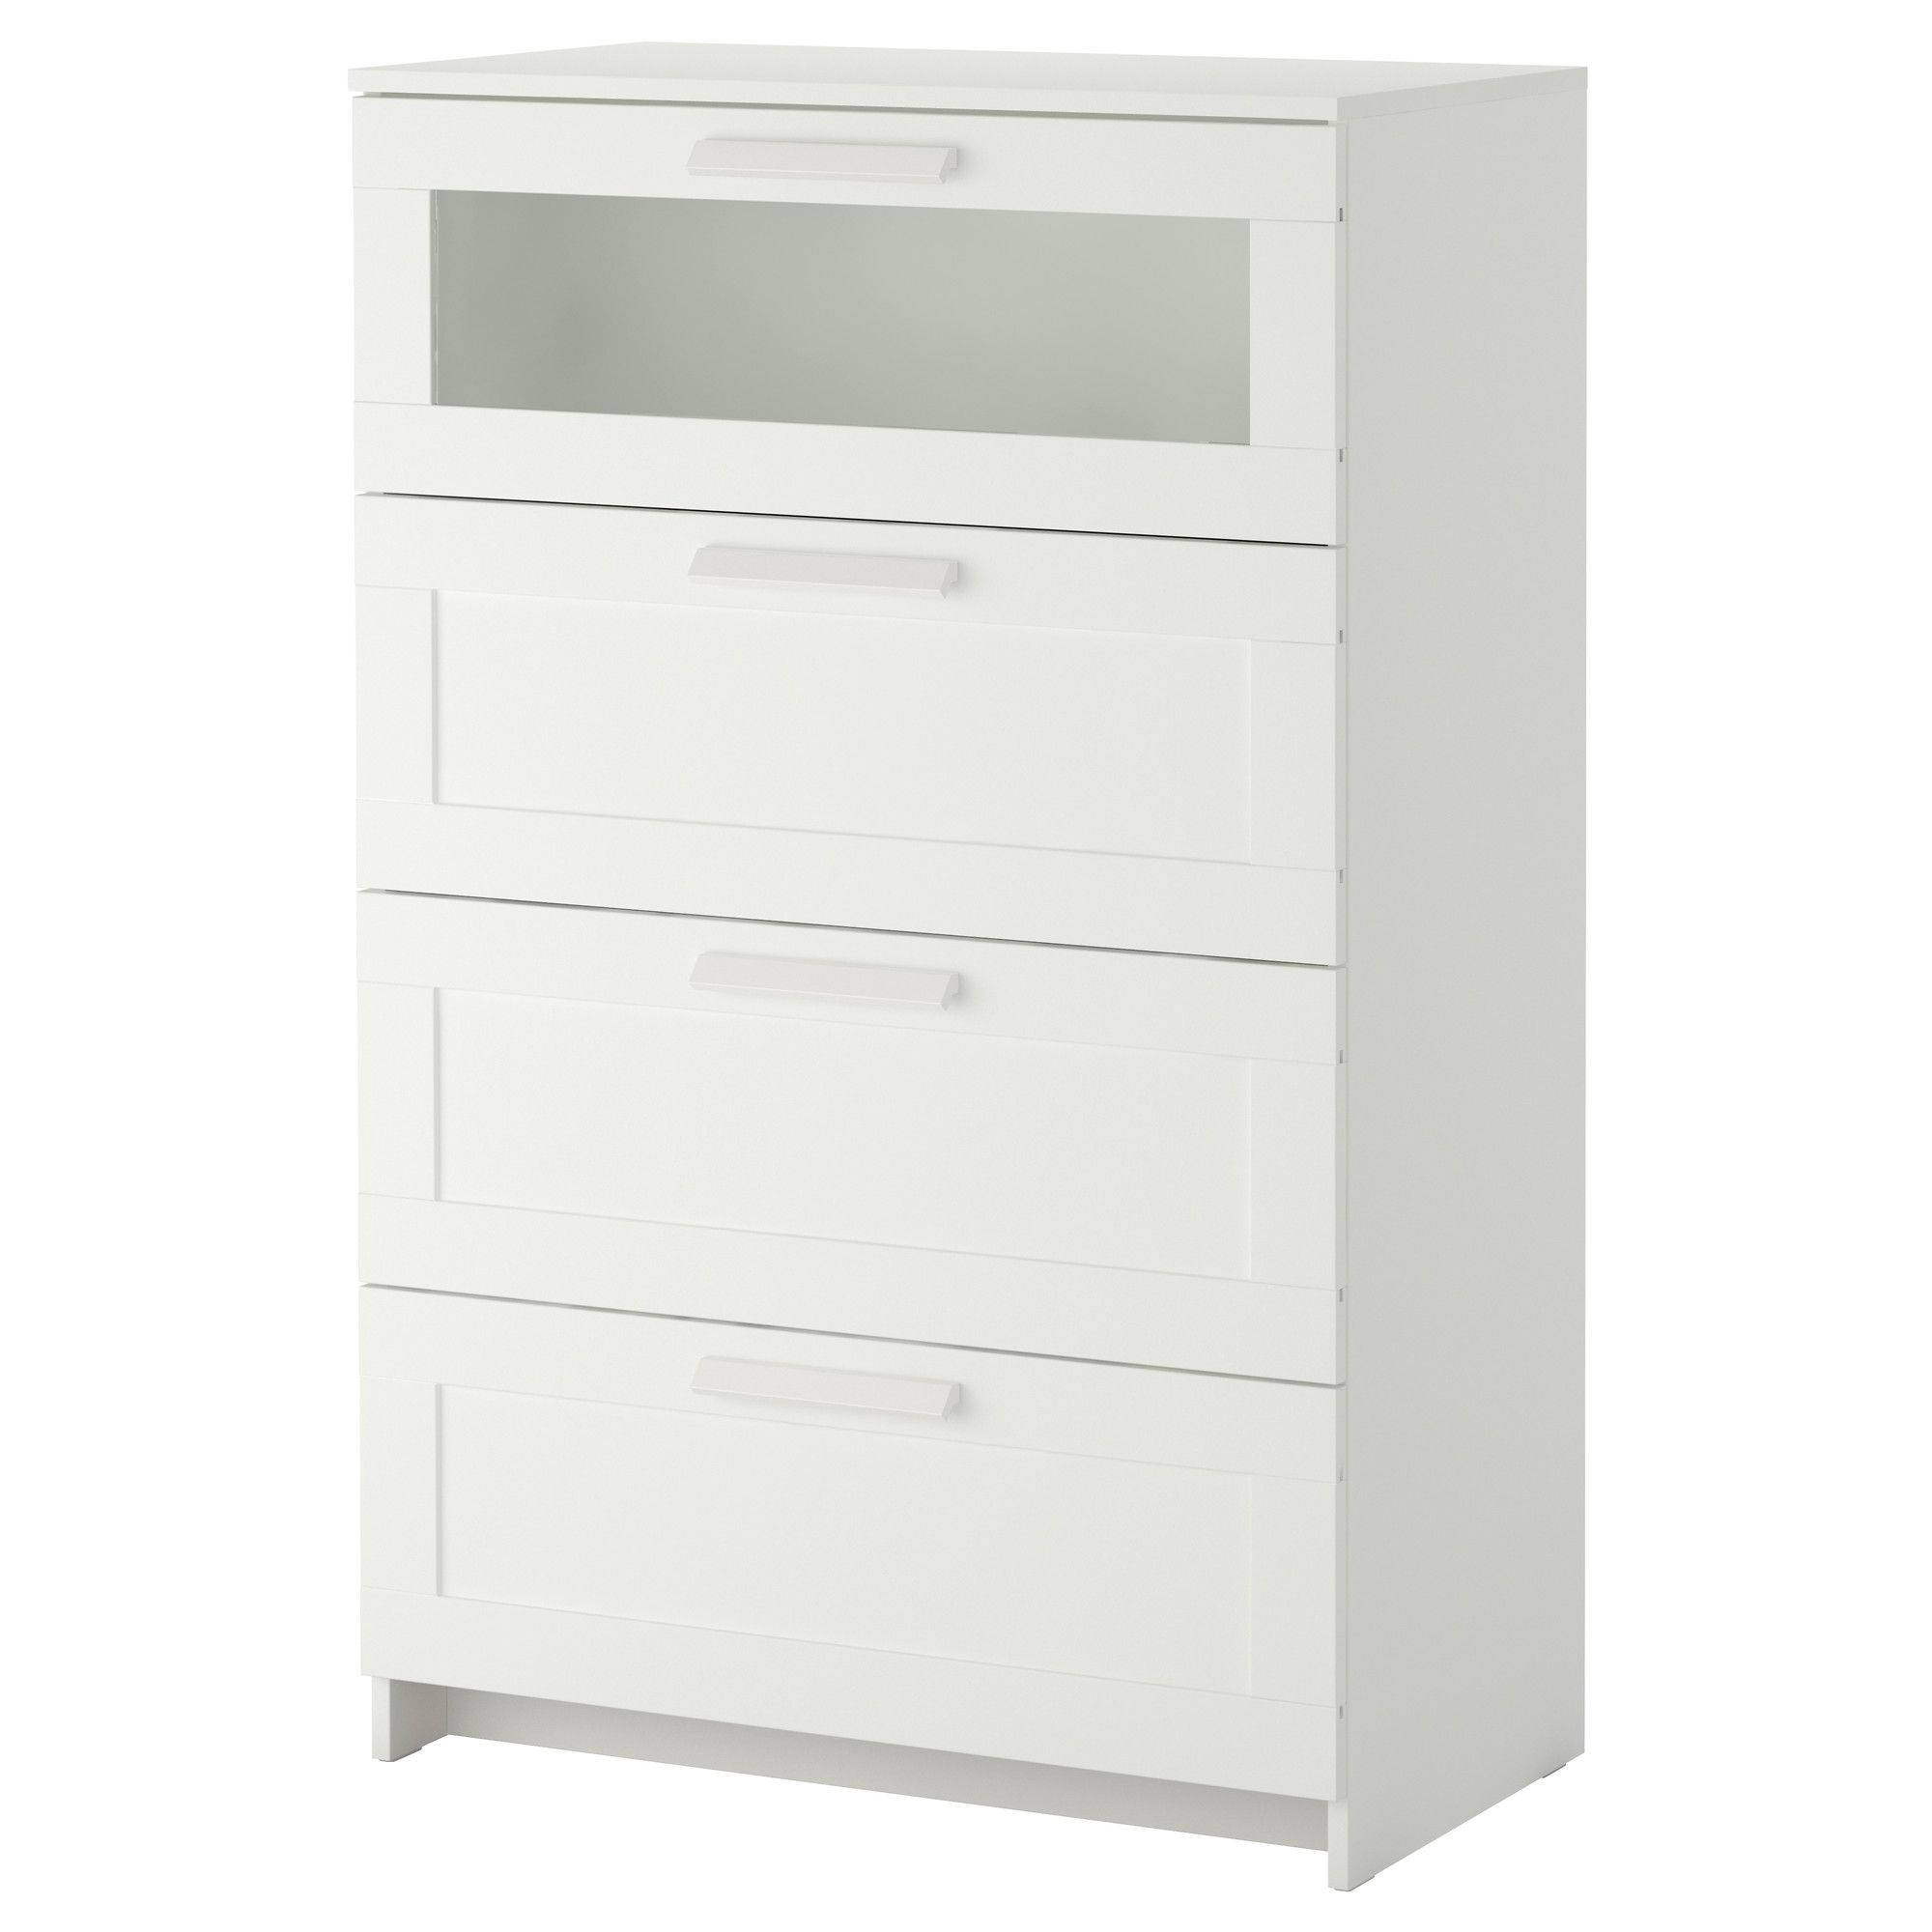 this for her number hopen going ikea buy drawer his definitely to perfect dresser space and pin mine article storage